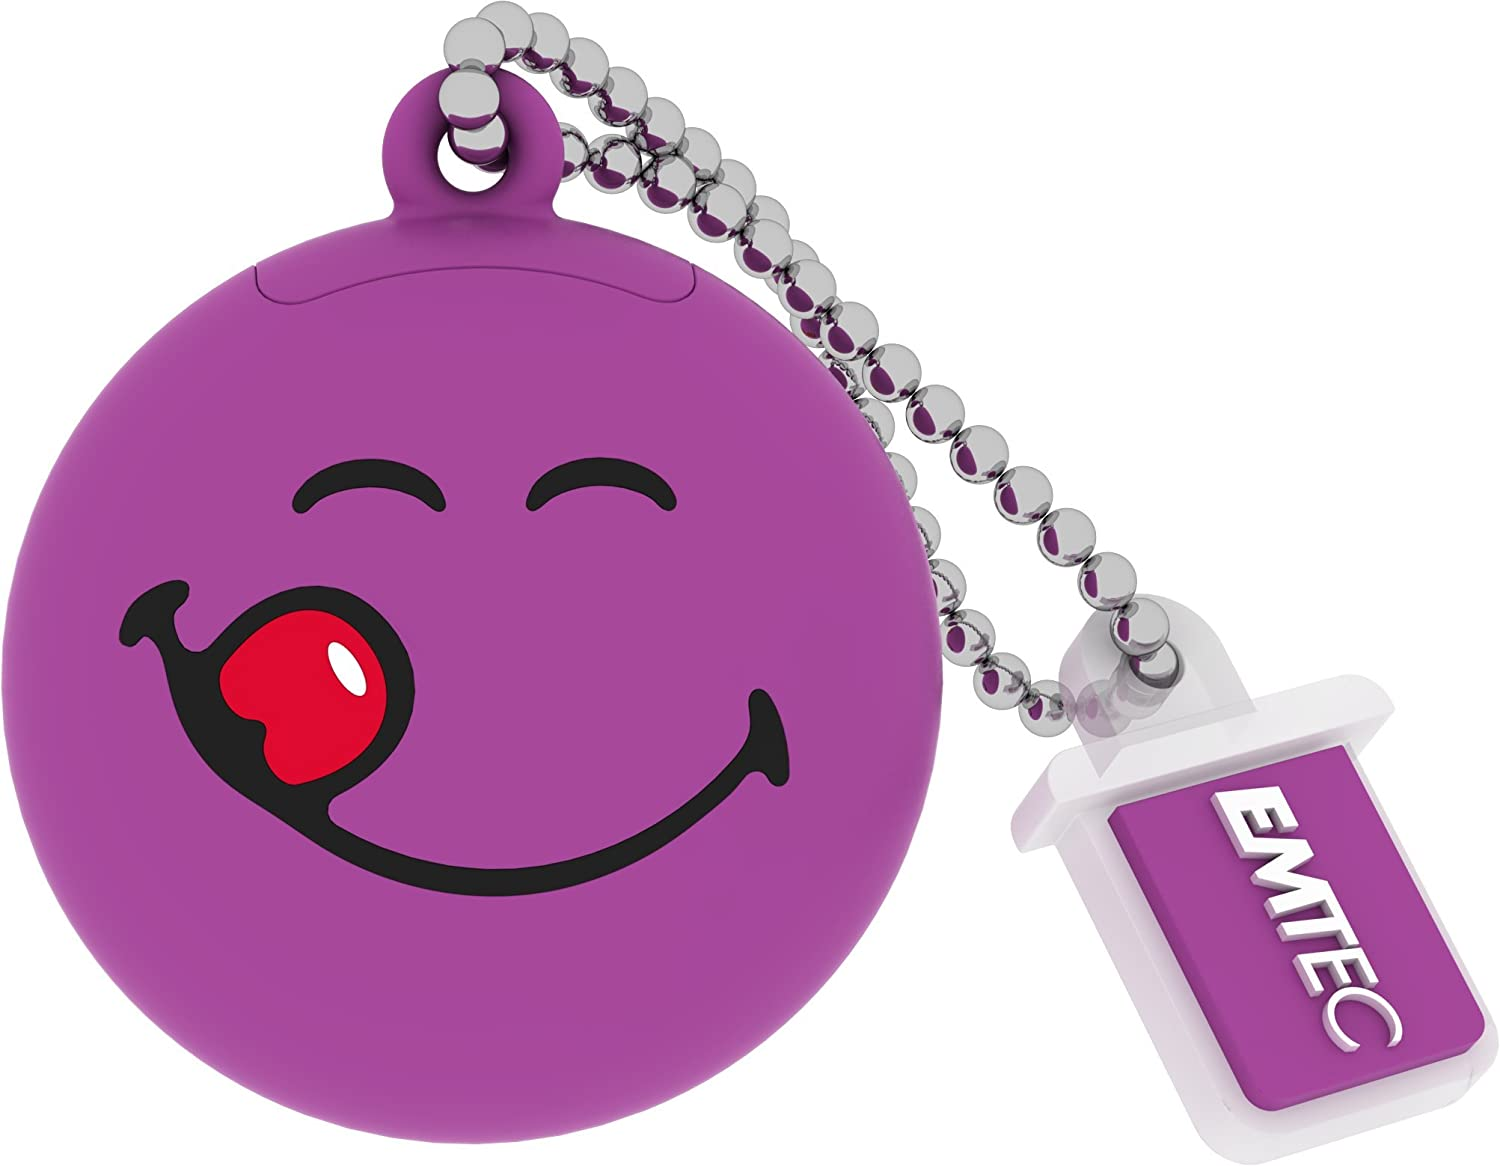 Smiley World 8 GB USB 2.0 Flash Drive, Purple